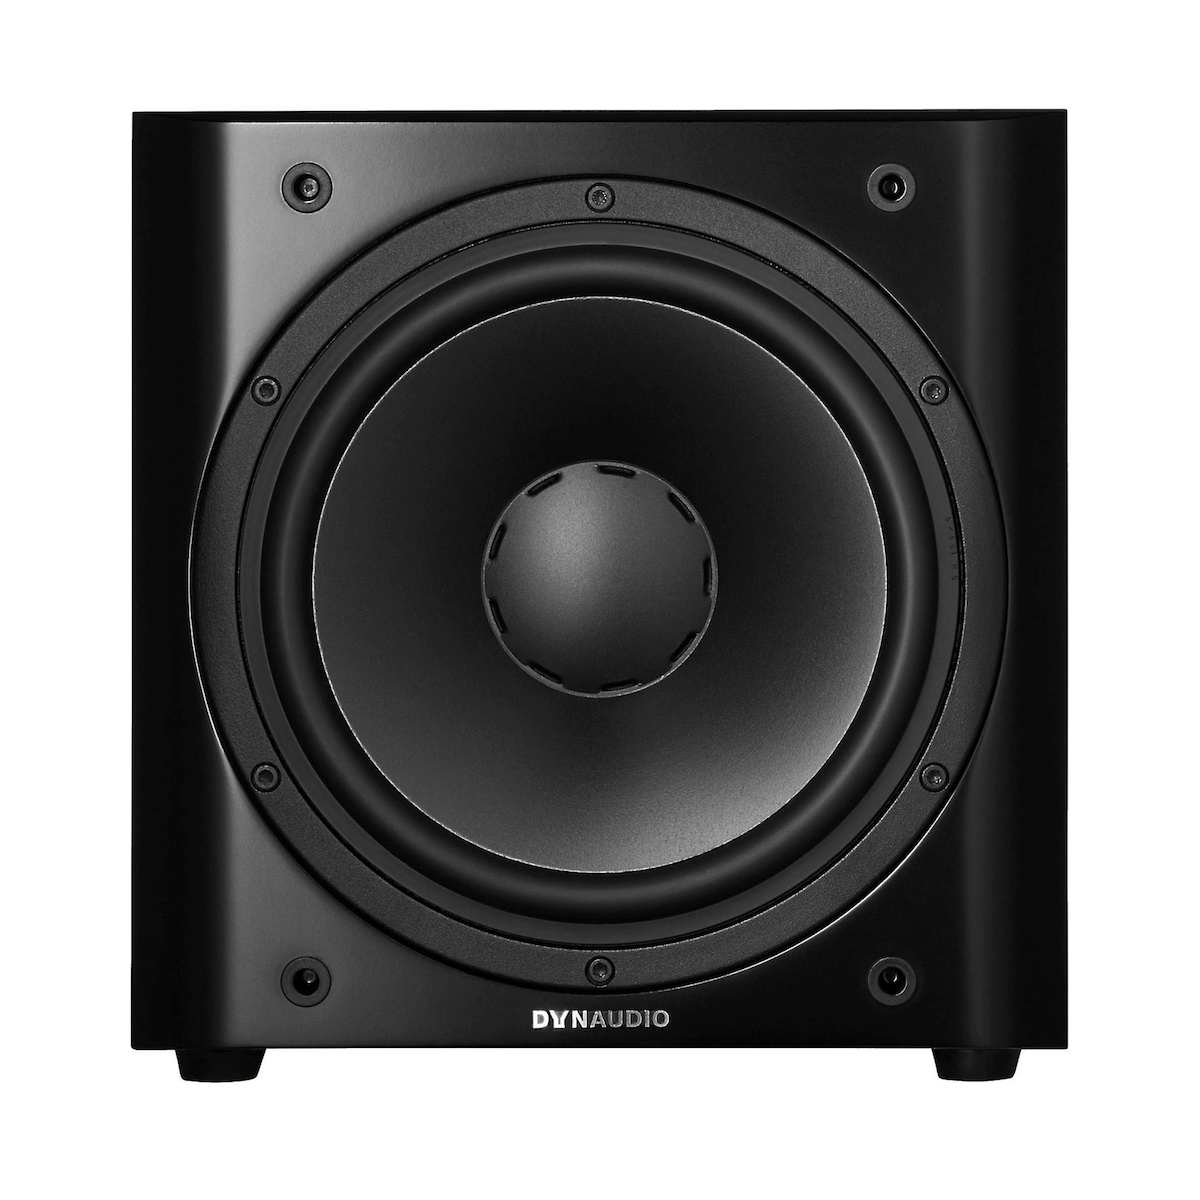 Dynaudio Sub 3 - Compact Active Subwoofer, Dynaudio, Active Subwoofer - AVStore.in